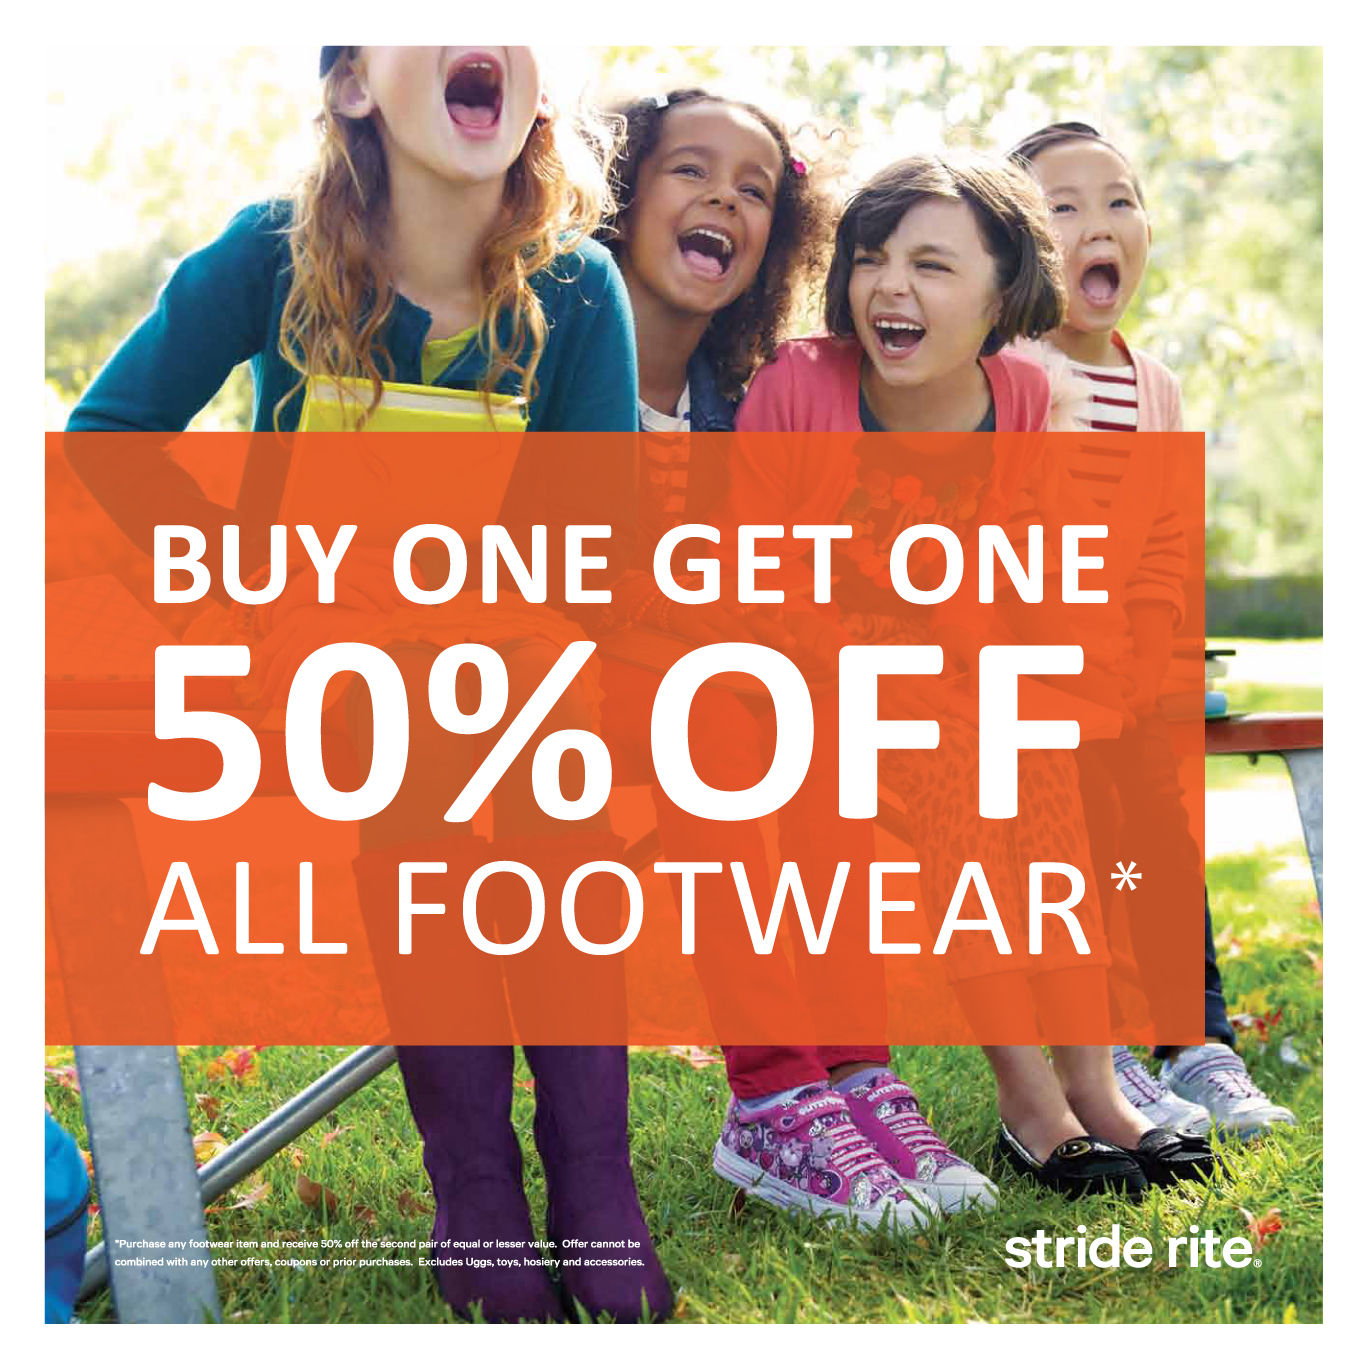 graphic regarding Stride Rite Coupon Printable titled Stride Ceremony Coupon Code: B1G1 50% Off On-line Inside Outlets